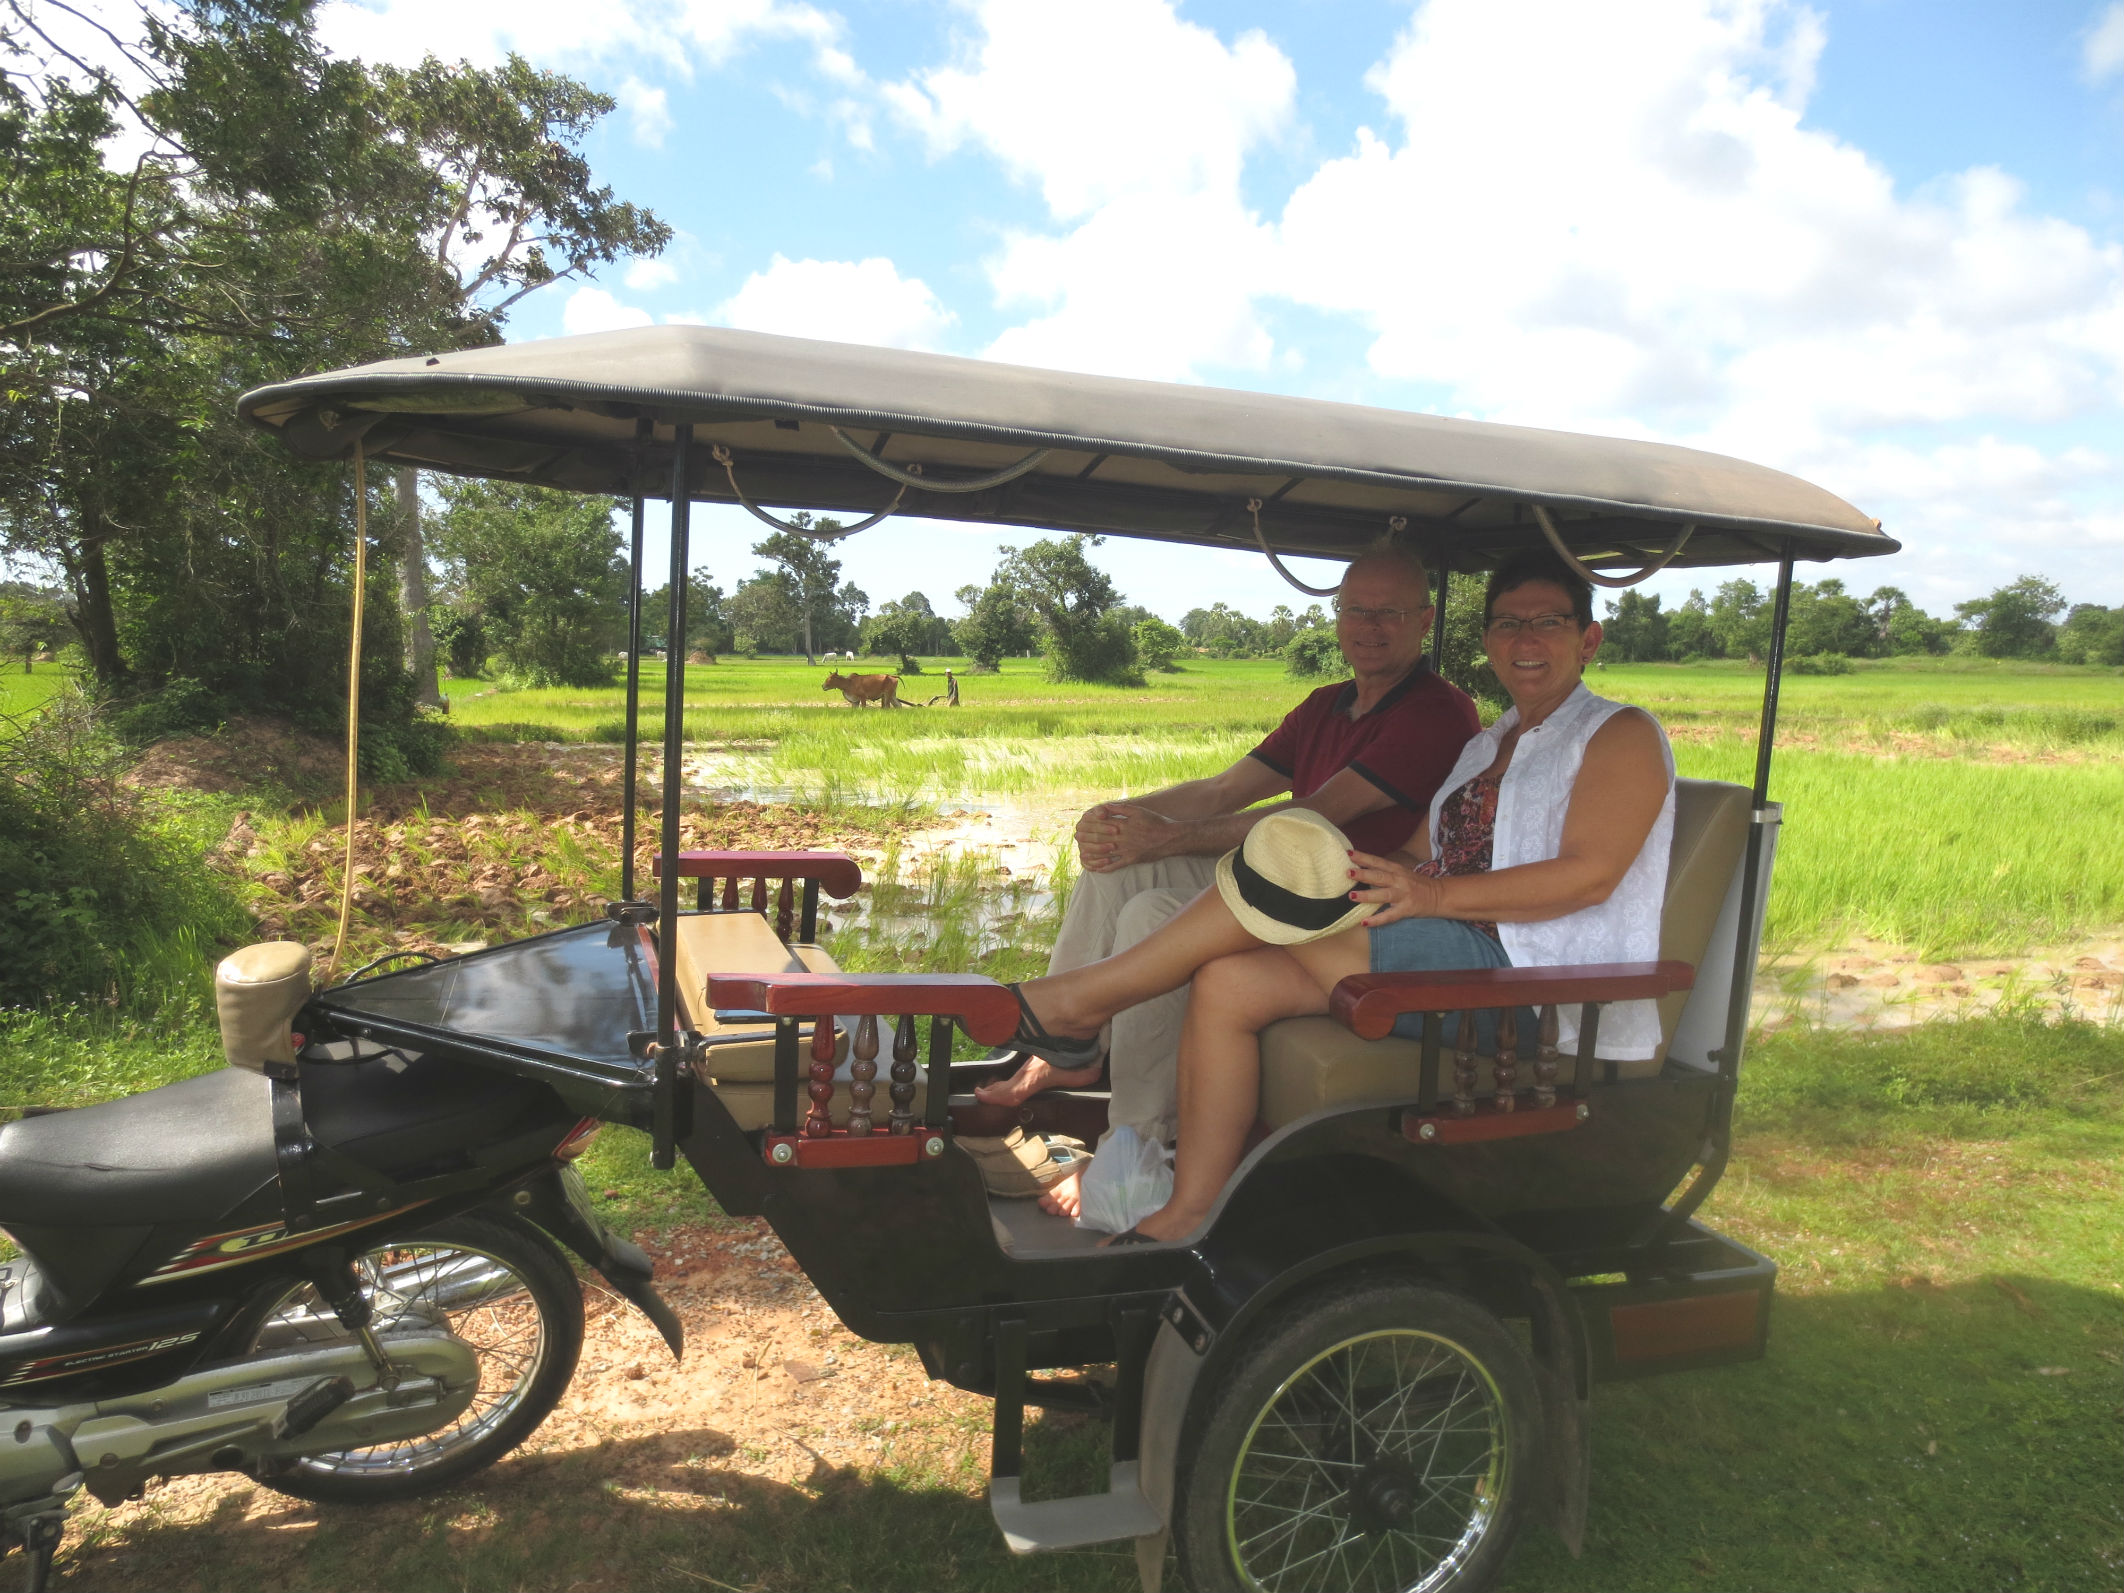 Tuk-tuk in the paddy fields